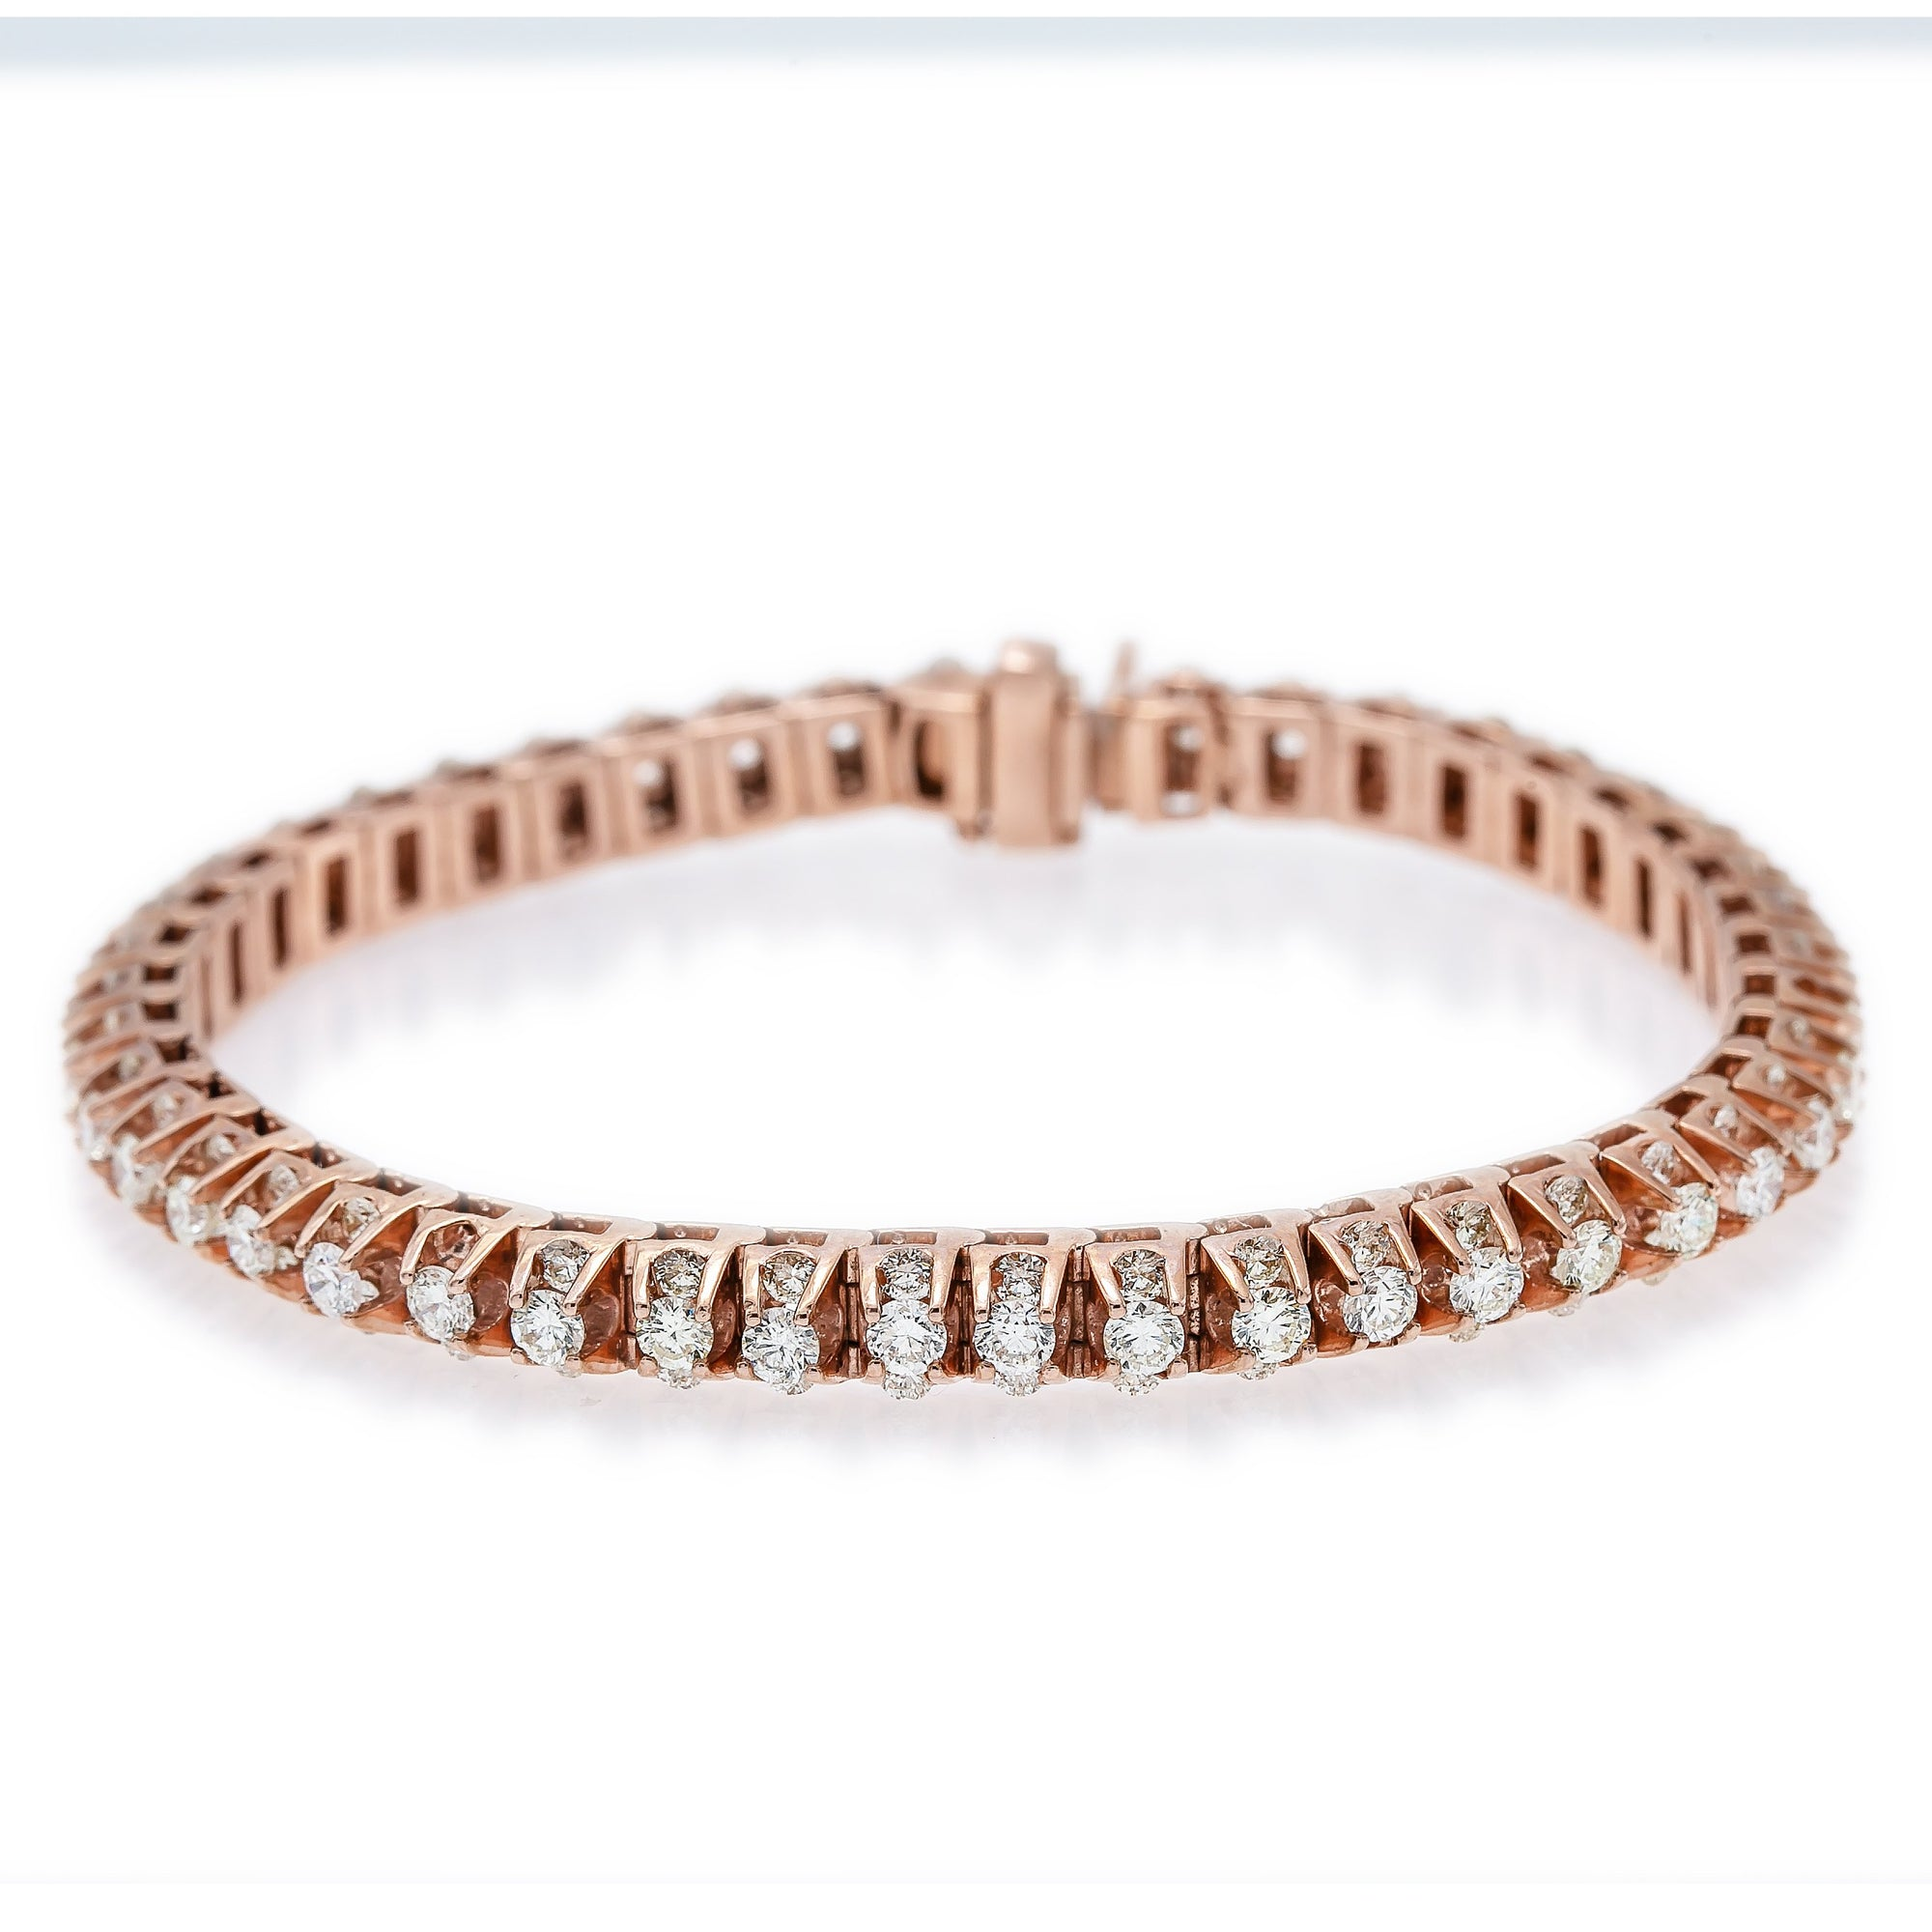 14K Rose Gold Ladies Tennis Bracelet Prong Set With 6.20 CT